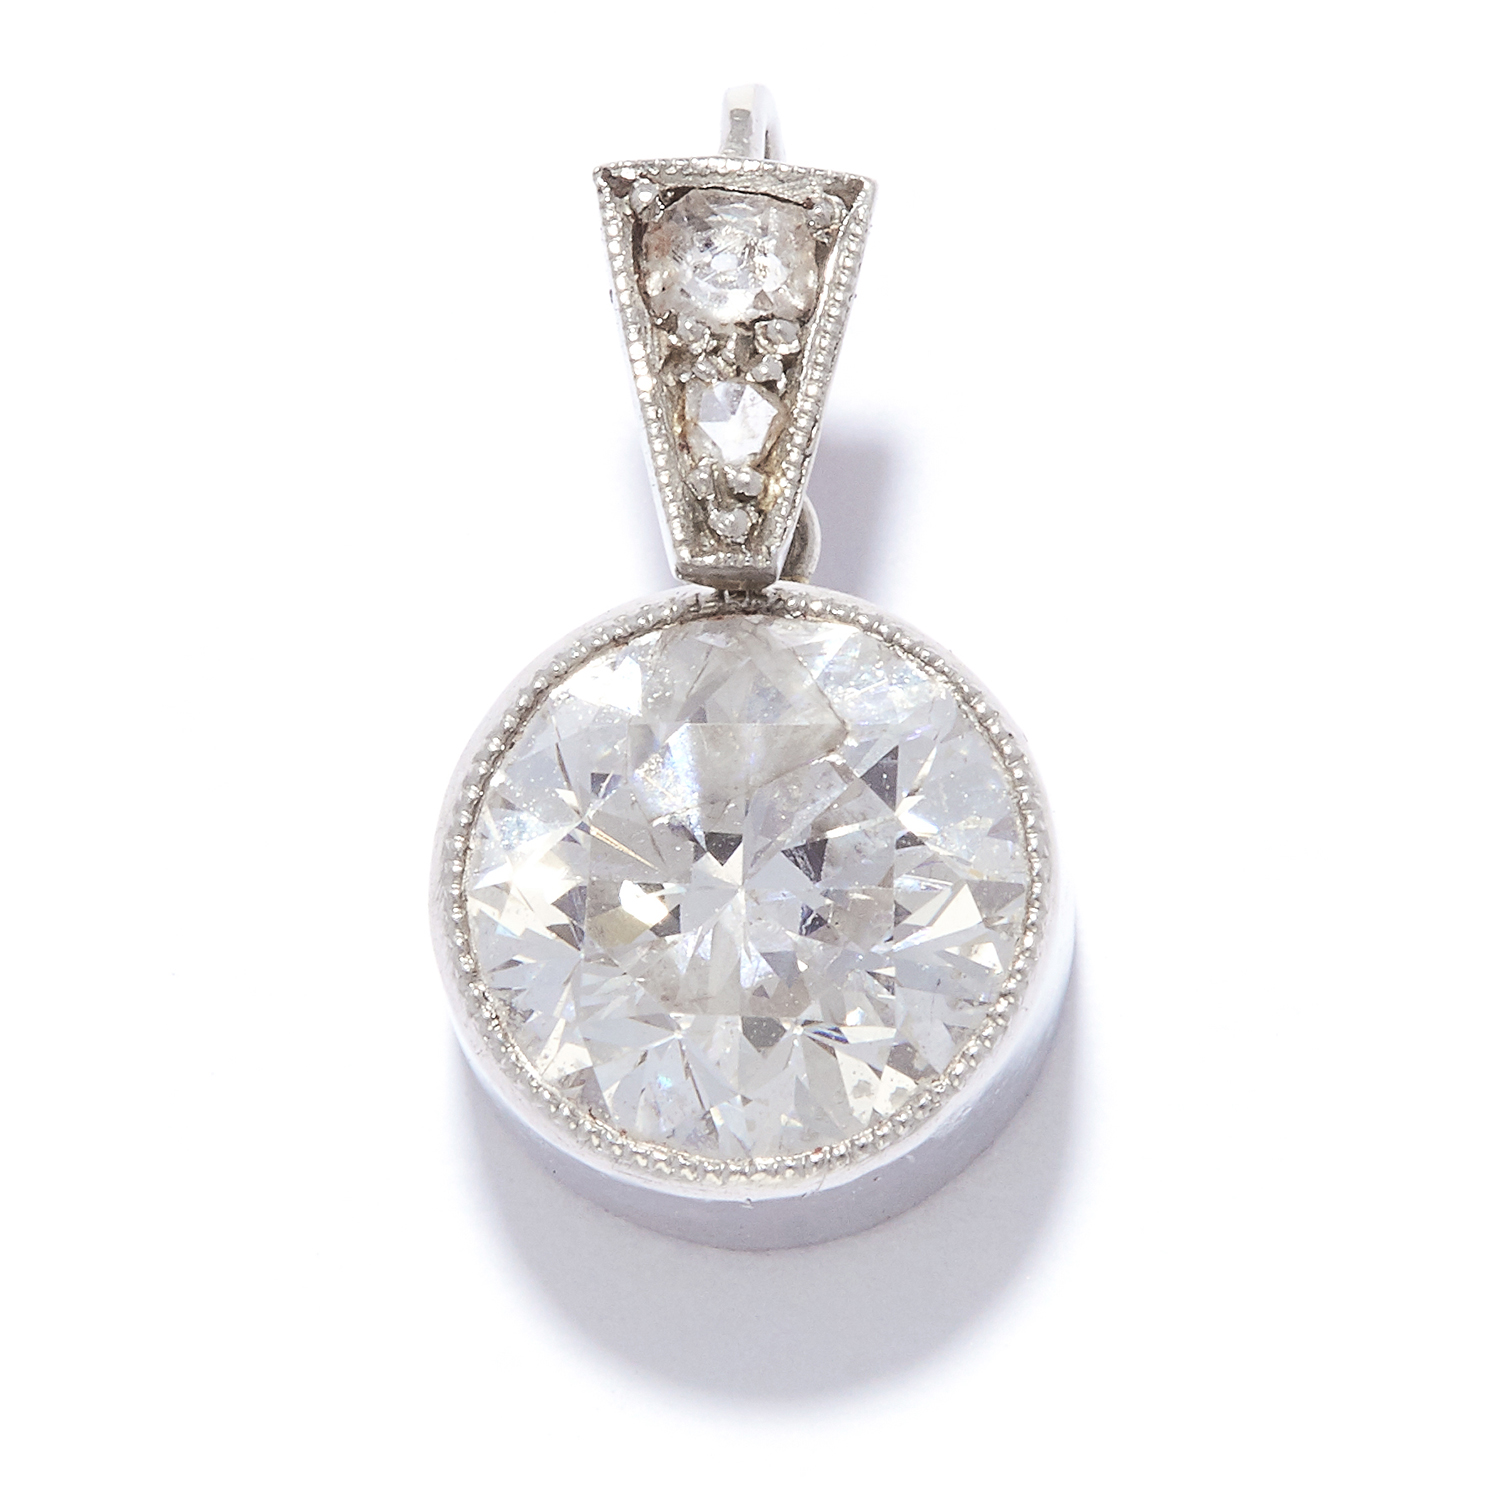 1.60 CARAT SOLITAIRE DIAMOND PENDANT in white gold or platinum, set with a round cut diamond of